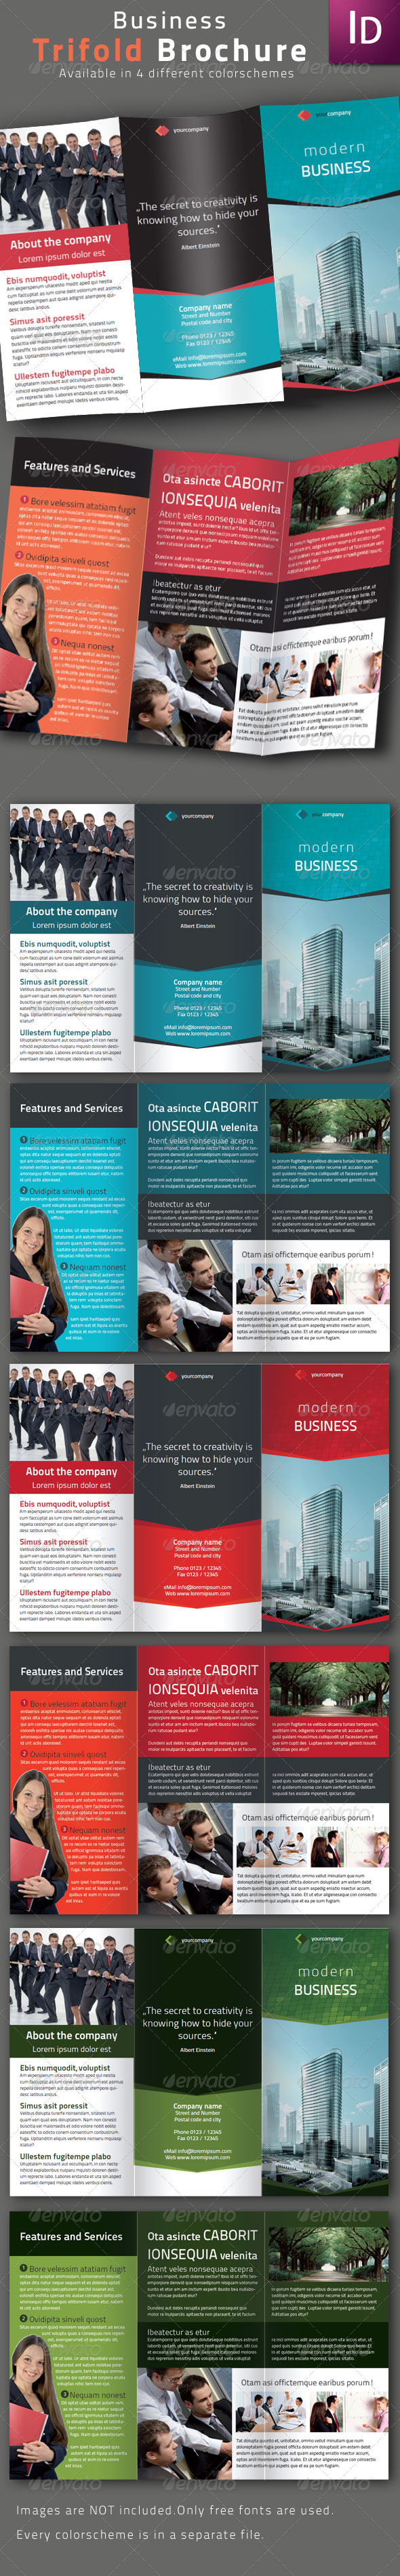 Business Trifold Brochure II - Corporate Brochures